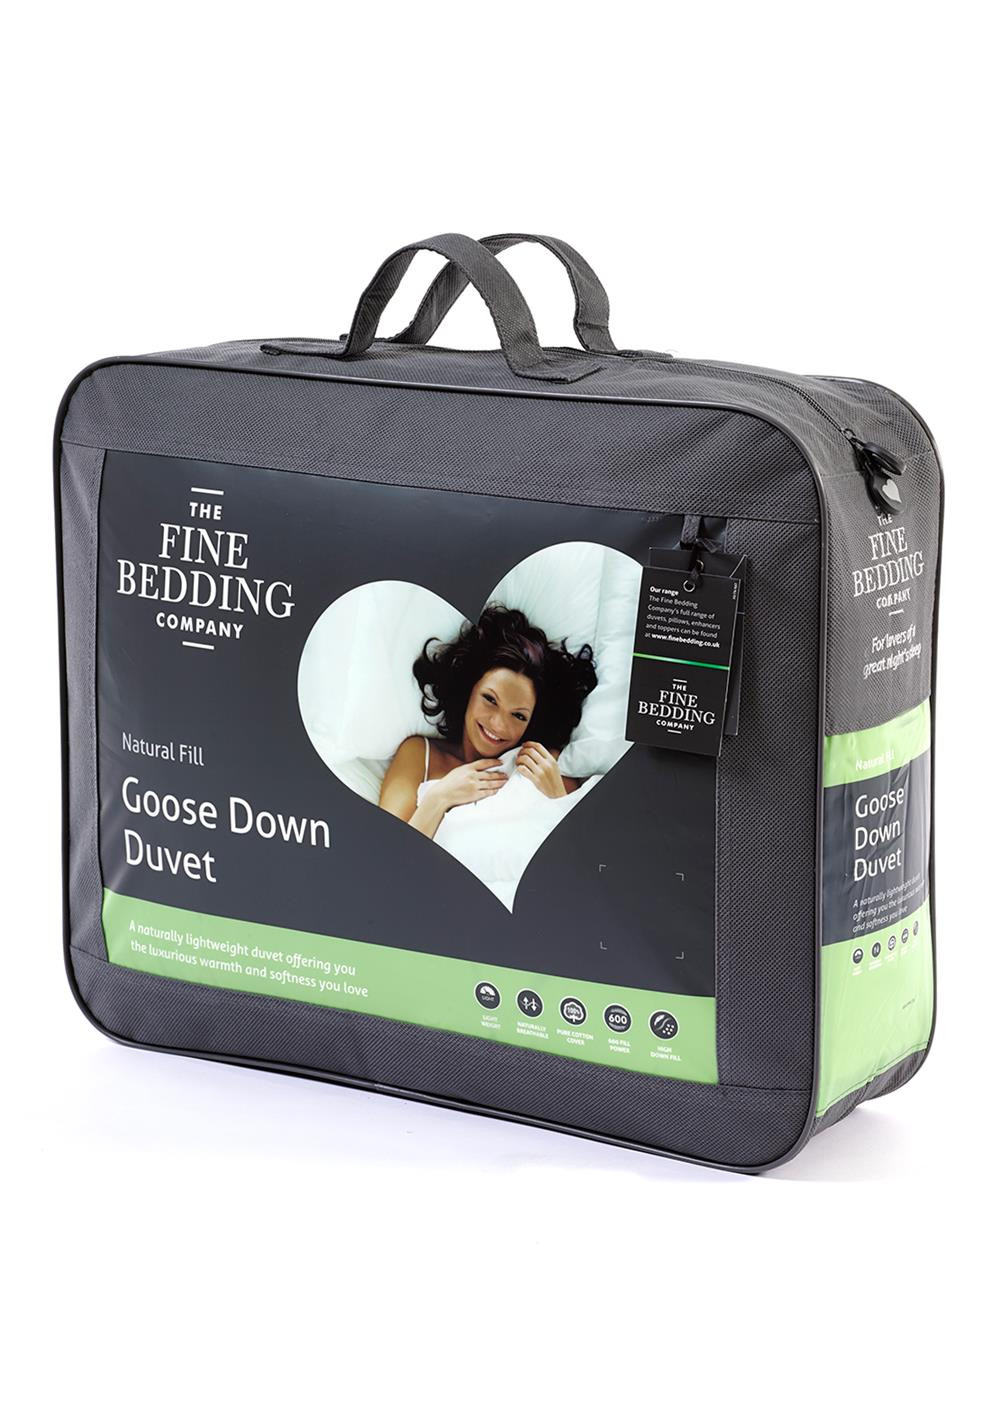 The Fine Bedding Company Goose Down Duvet 10.5 Tog